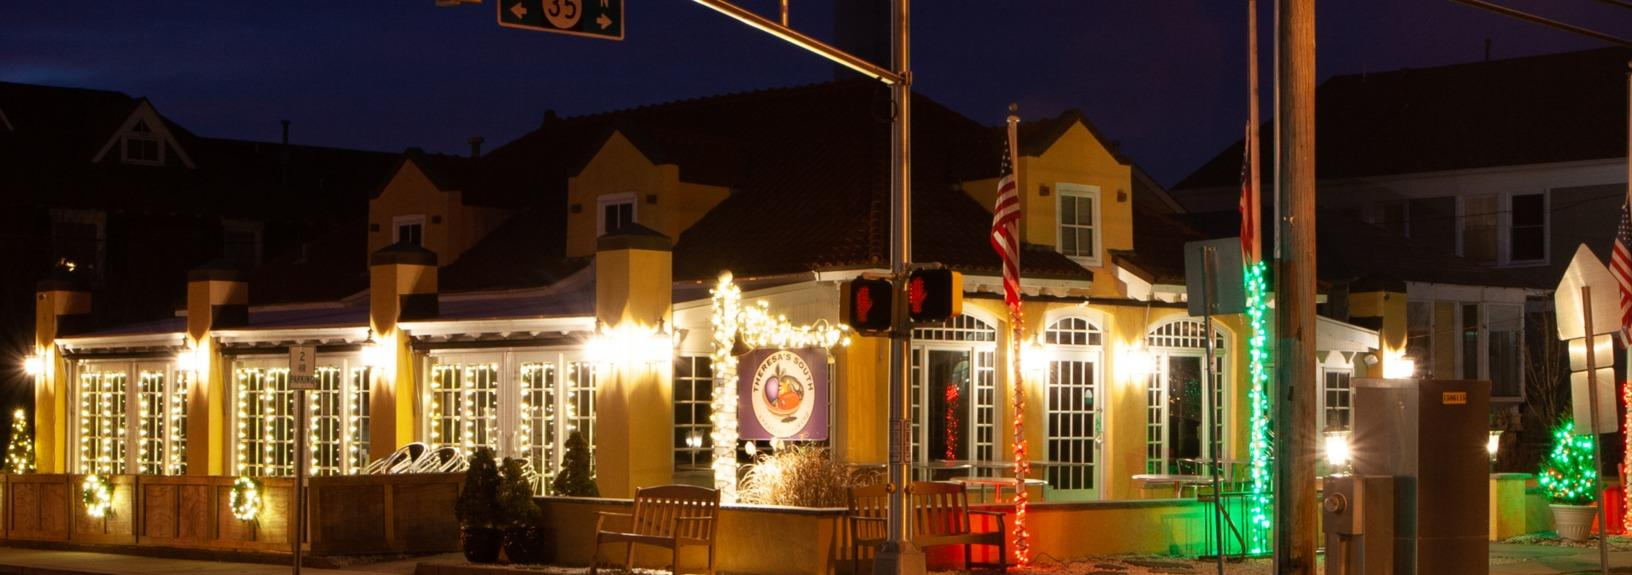 Theresa's South in Bay Head, NJ Holiday Lights - After Photo